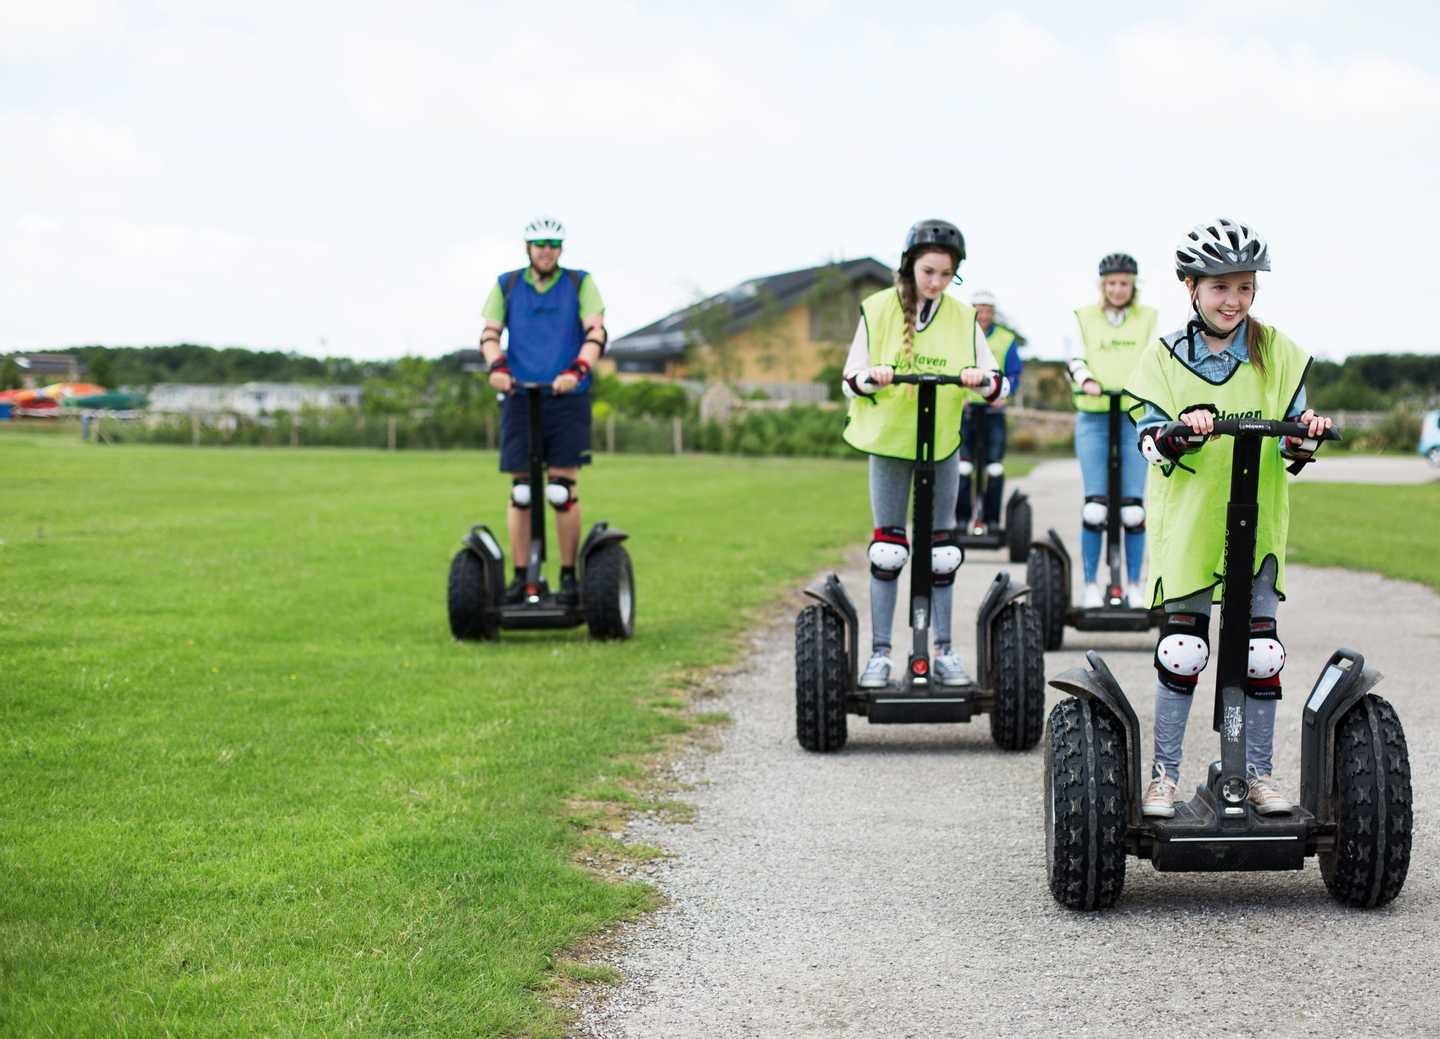 Guests exploring the park on a Segway